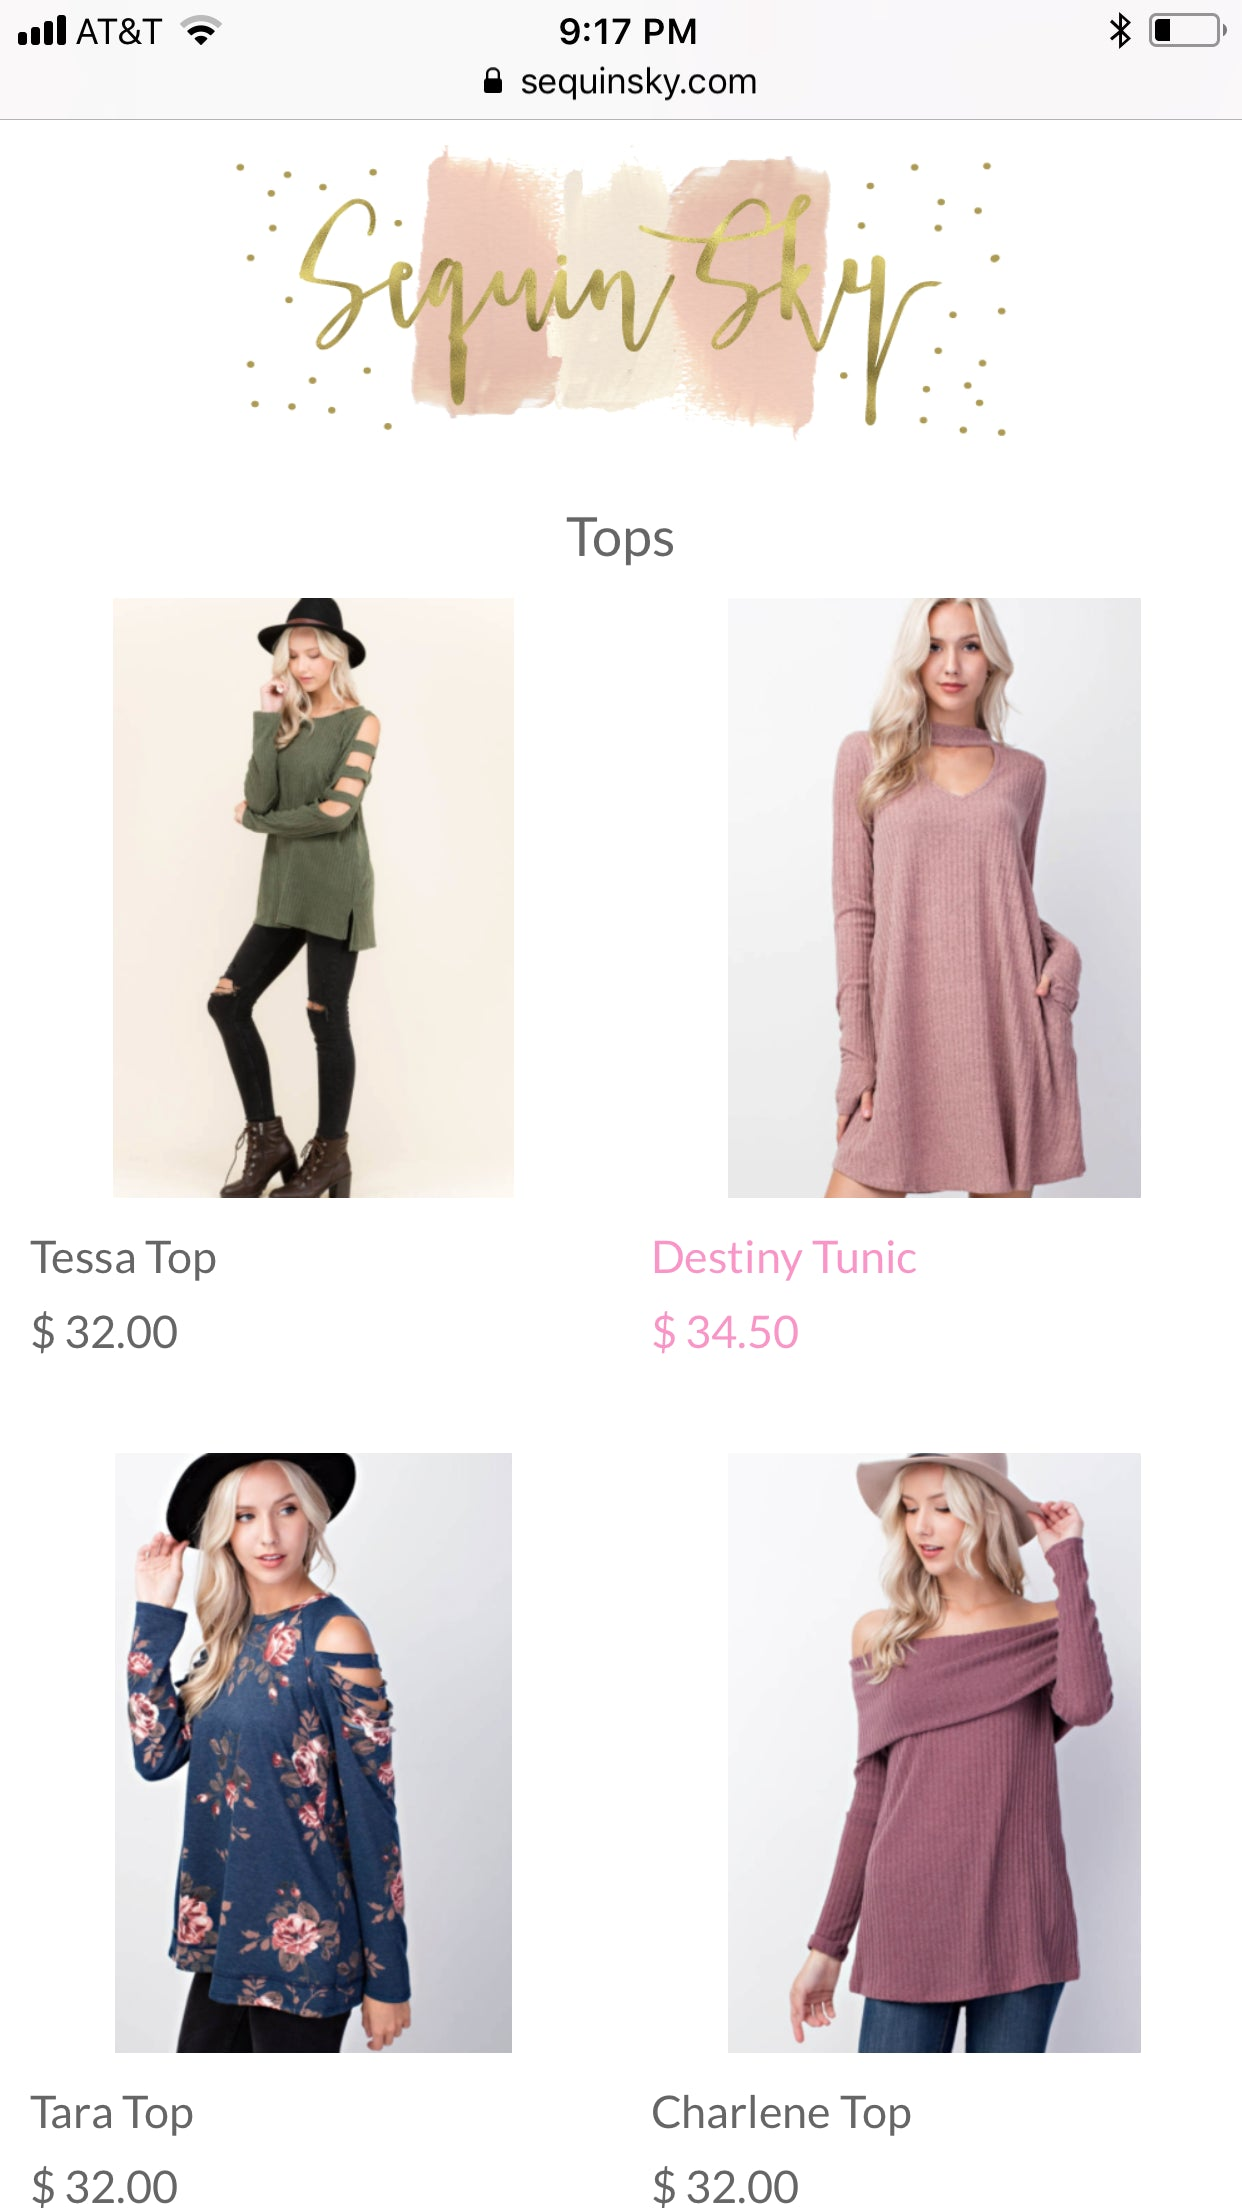 Sequin Sky-Online Fashion Boutique  Screenshot - 3